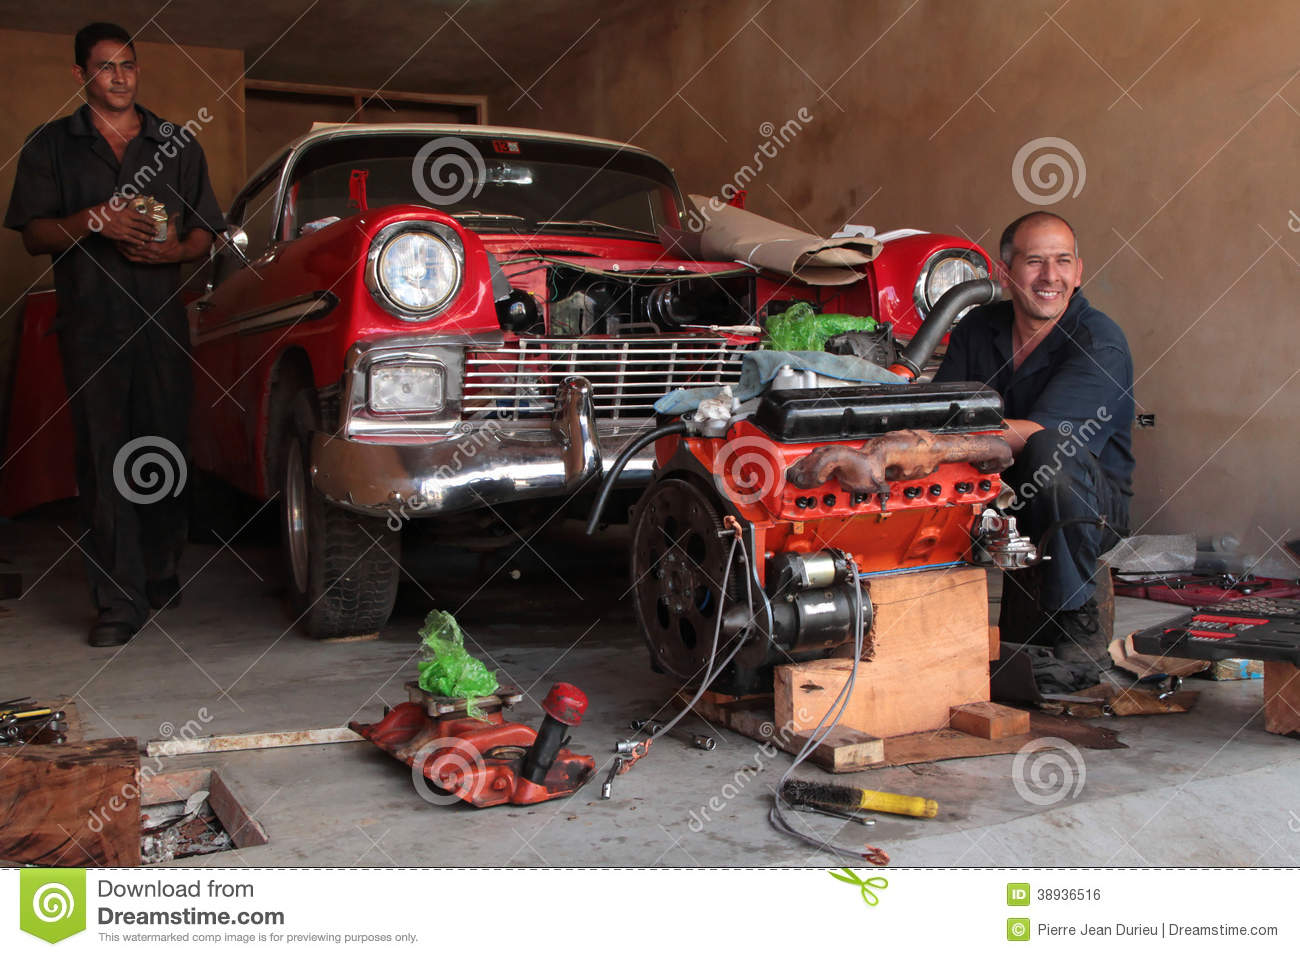 How to Start a Home Auto Repair Business